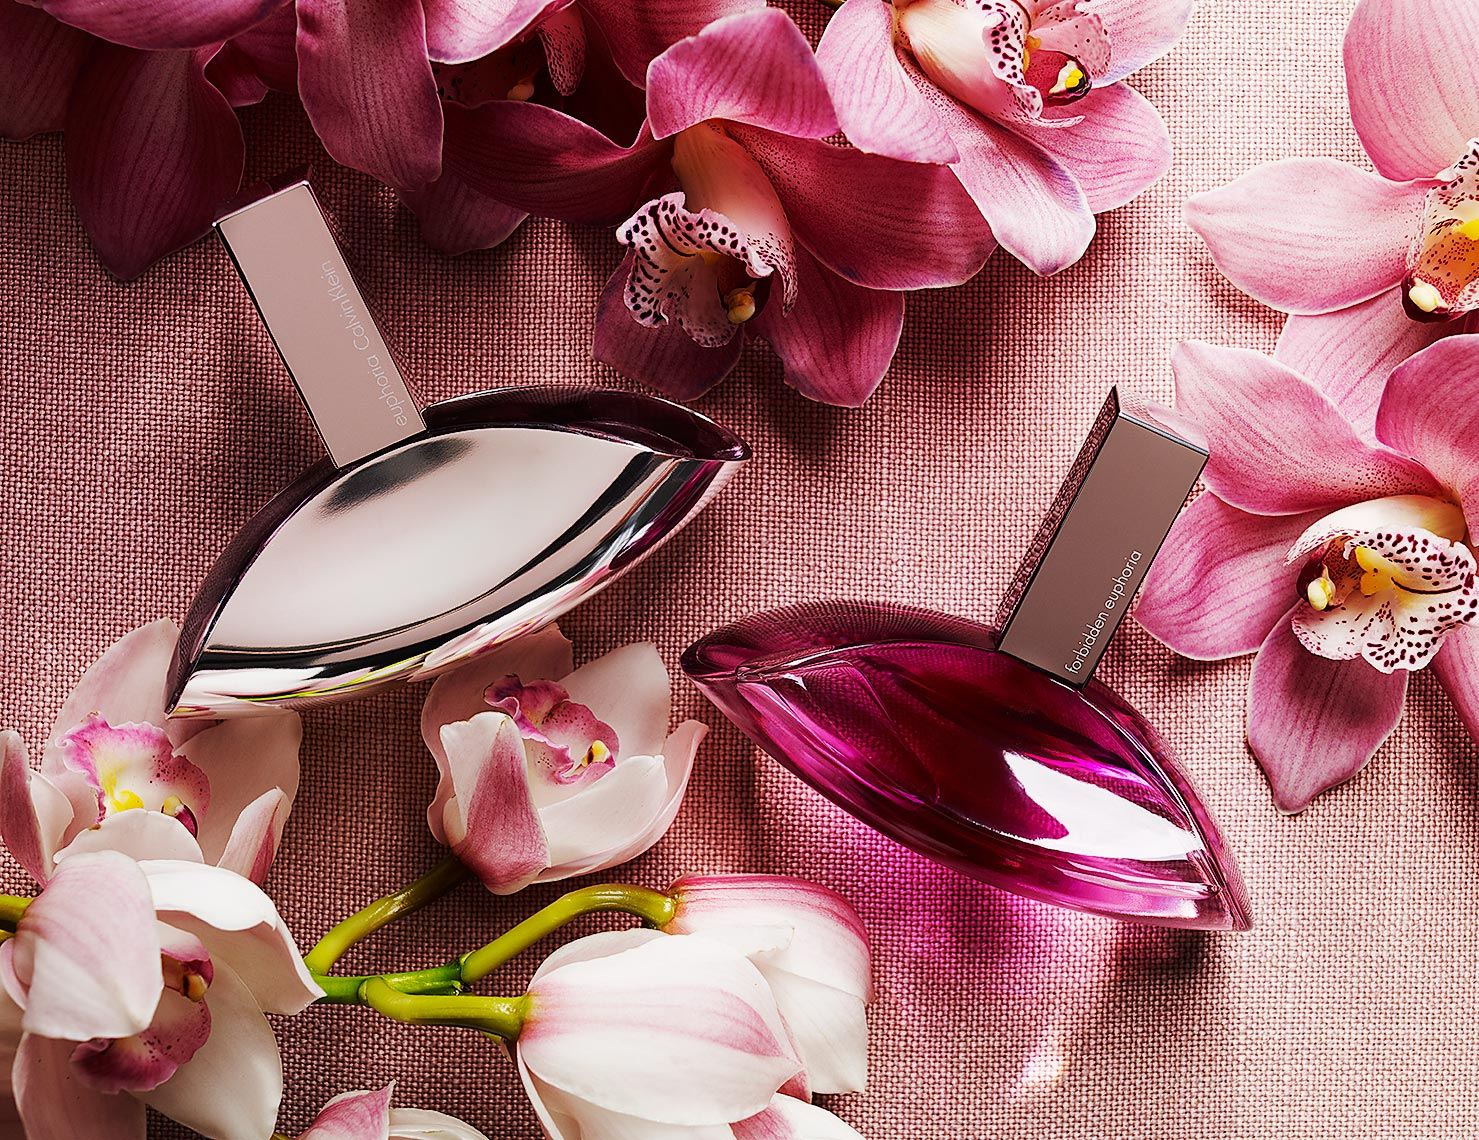 CK-Perfumes_Orchids_APF.jpg